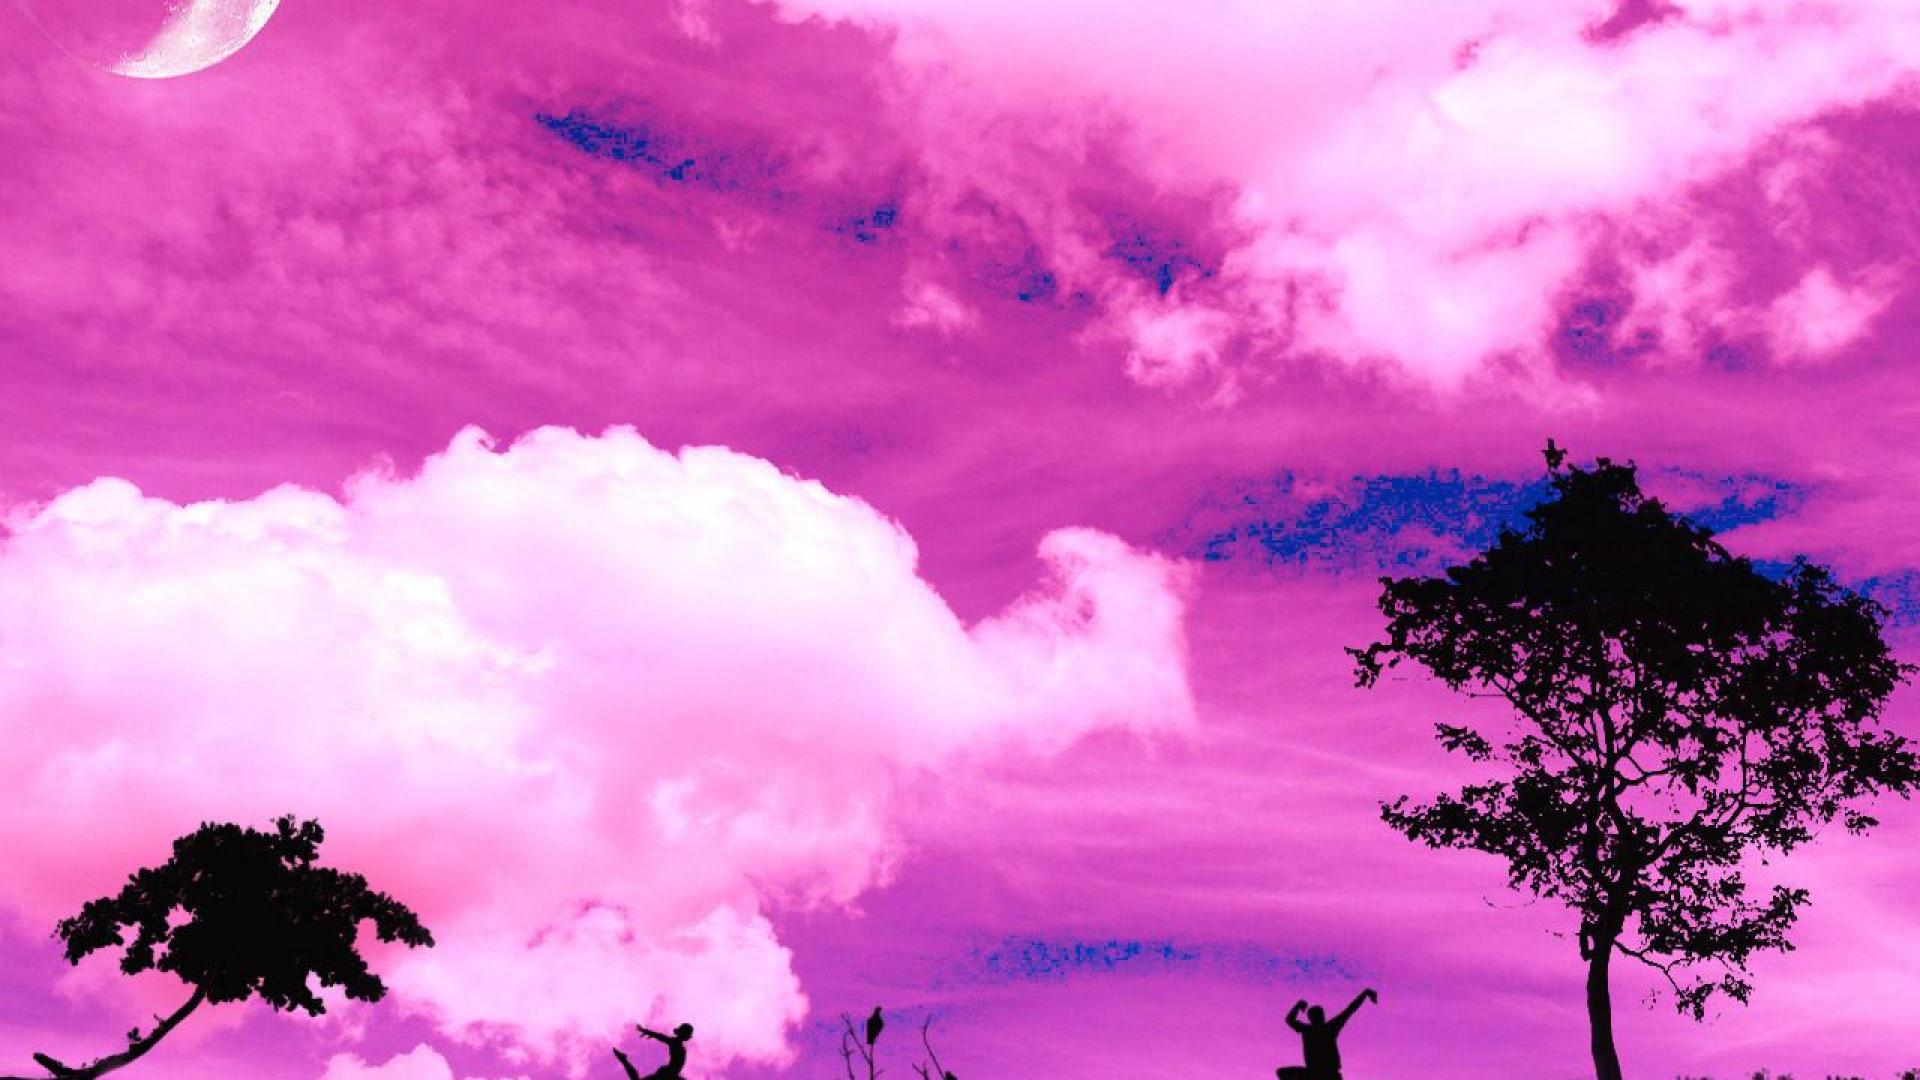 Pink Desktop Wallpaper Related Keywords amp Suggestions 1920x1080